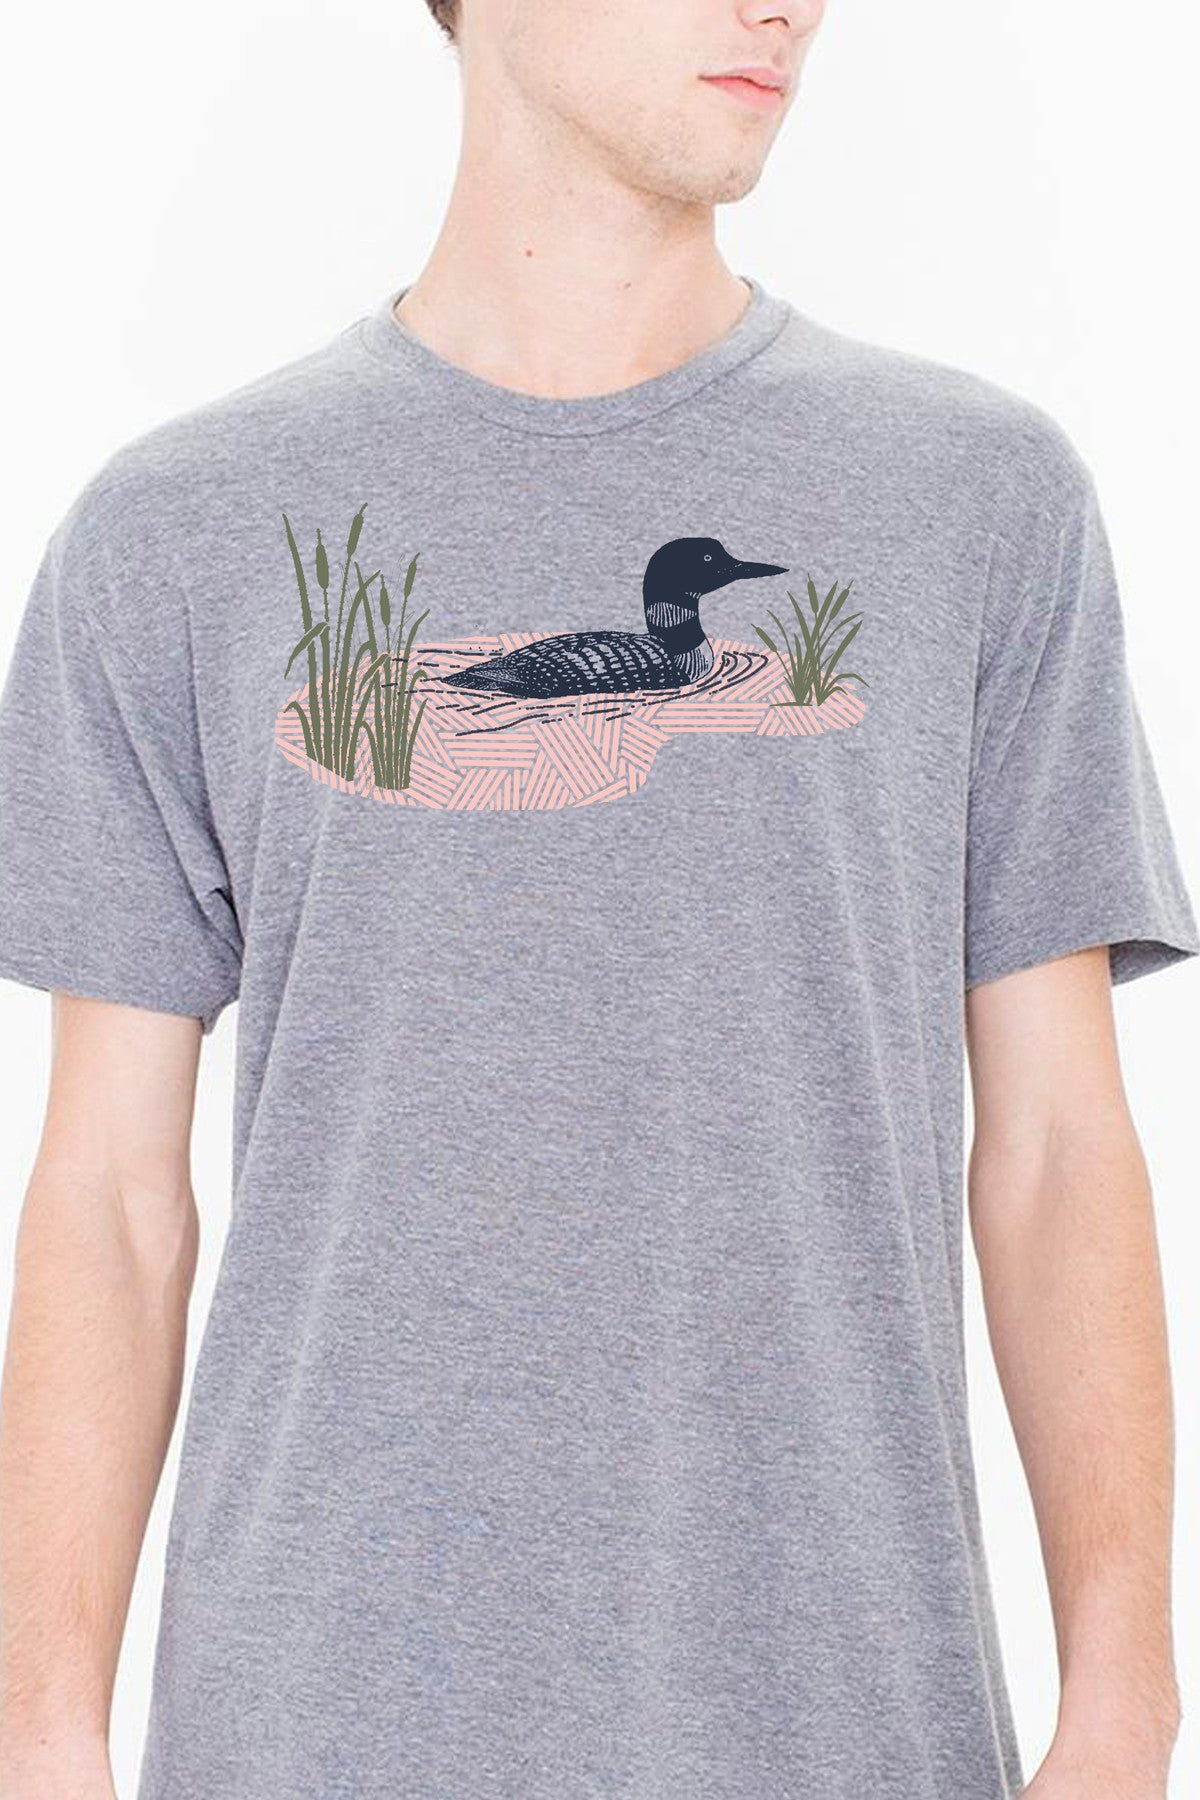 Workshop Studio, Loon and Lake hand silkscreened tee. Navy, pink and olive on athletic grey. Made in Ottawa, Canada